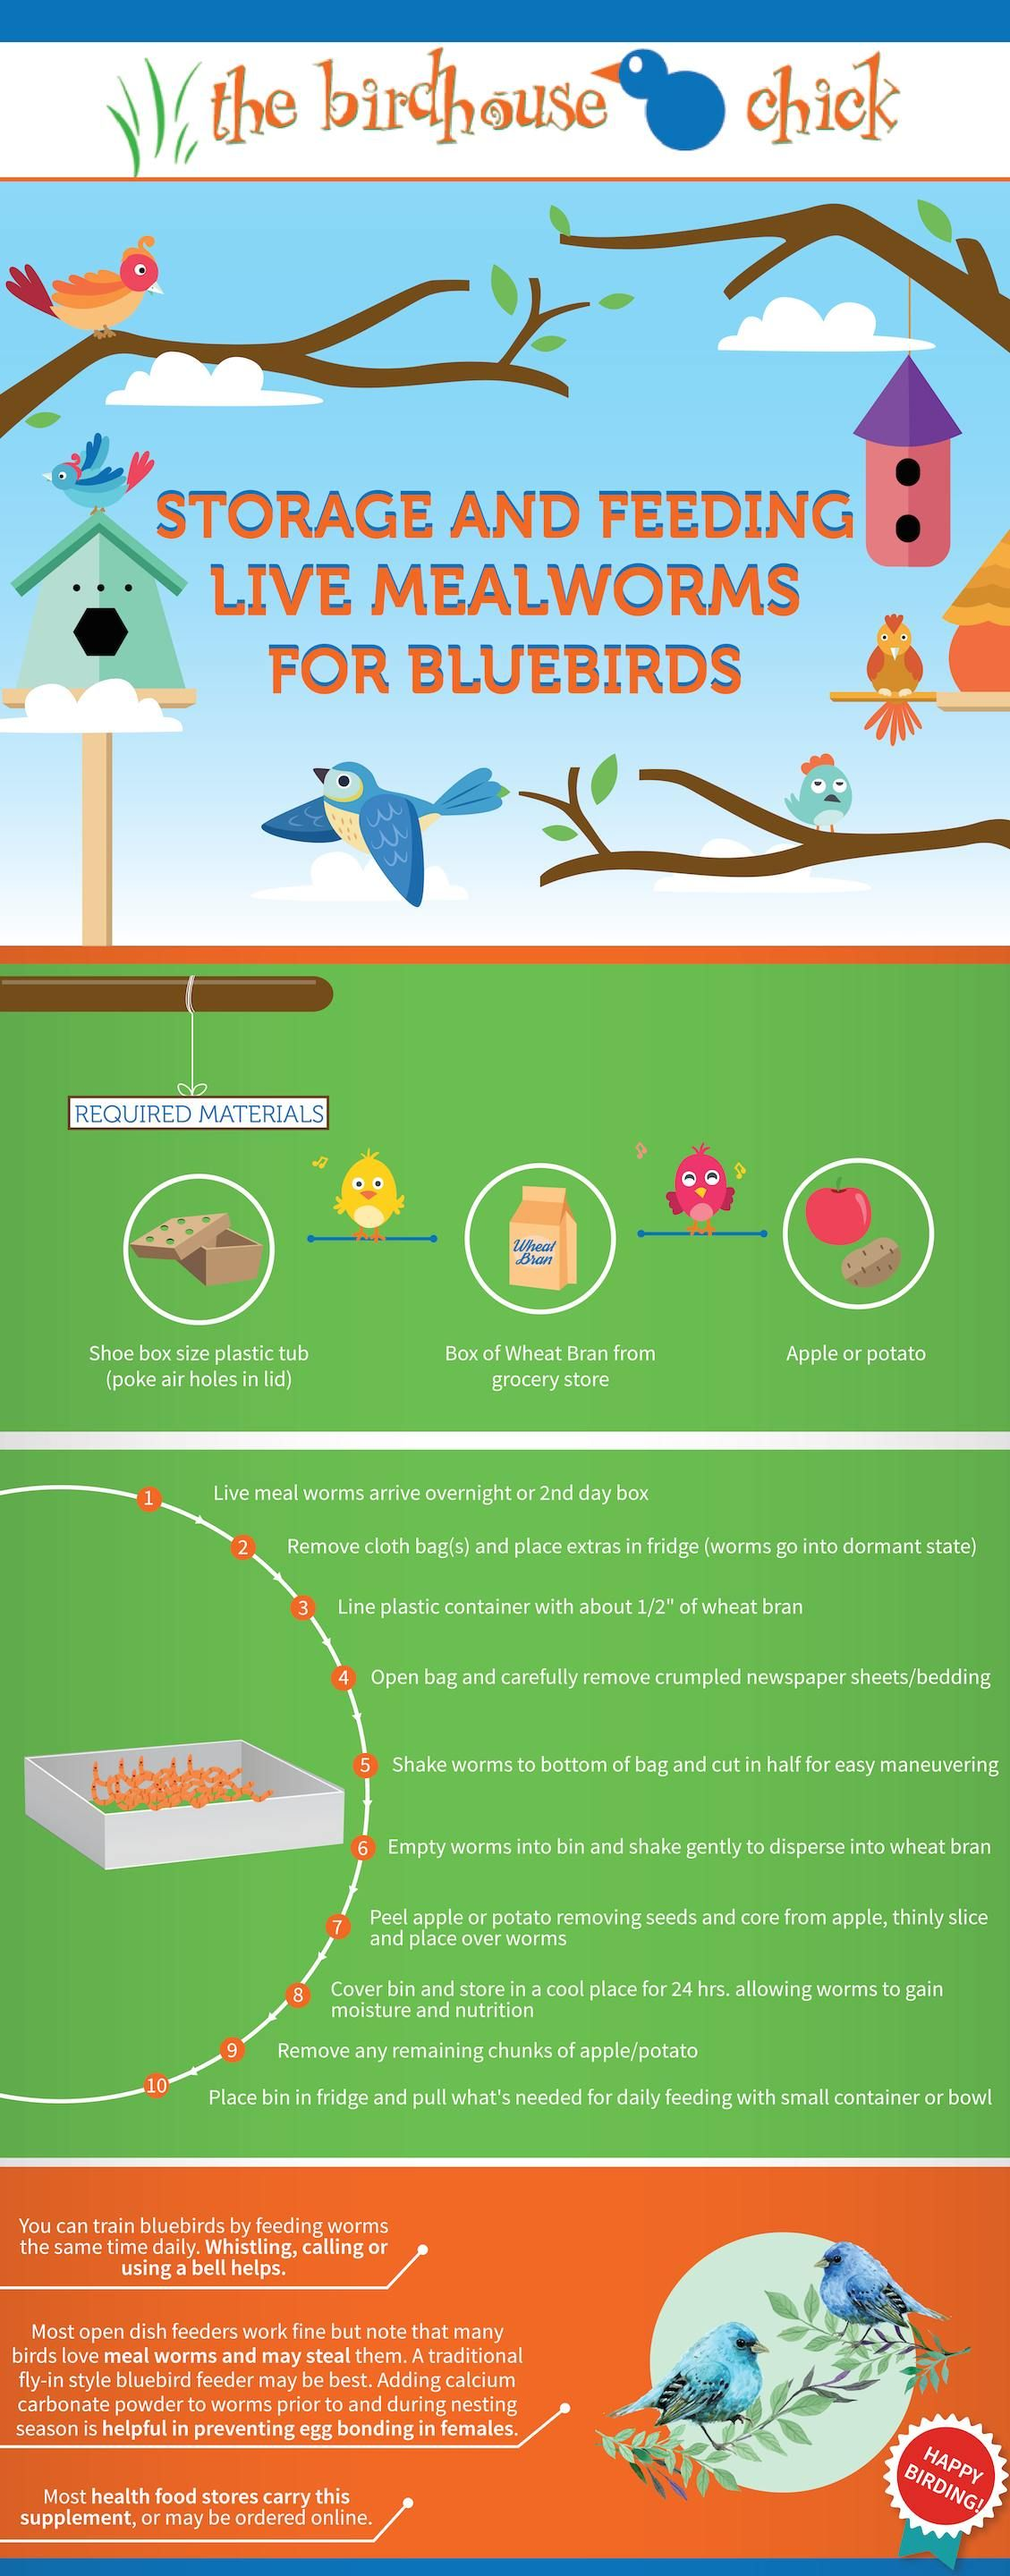 Dealing with live mealworms blue bird meal worms wild